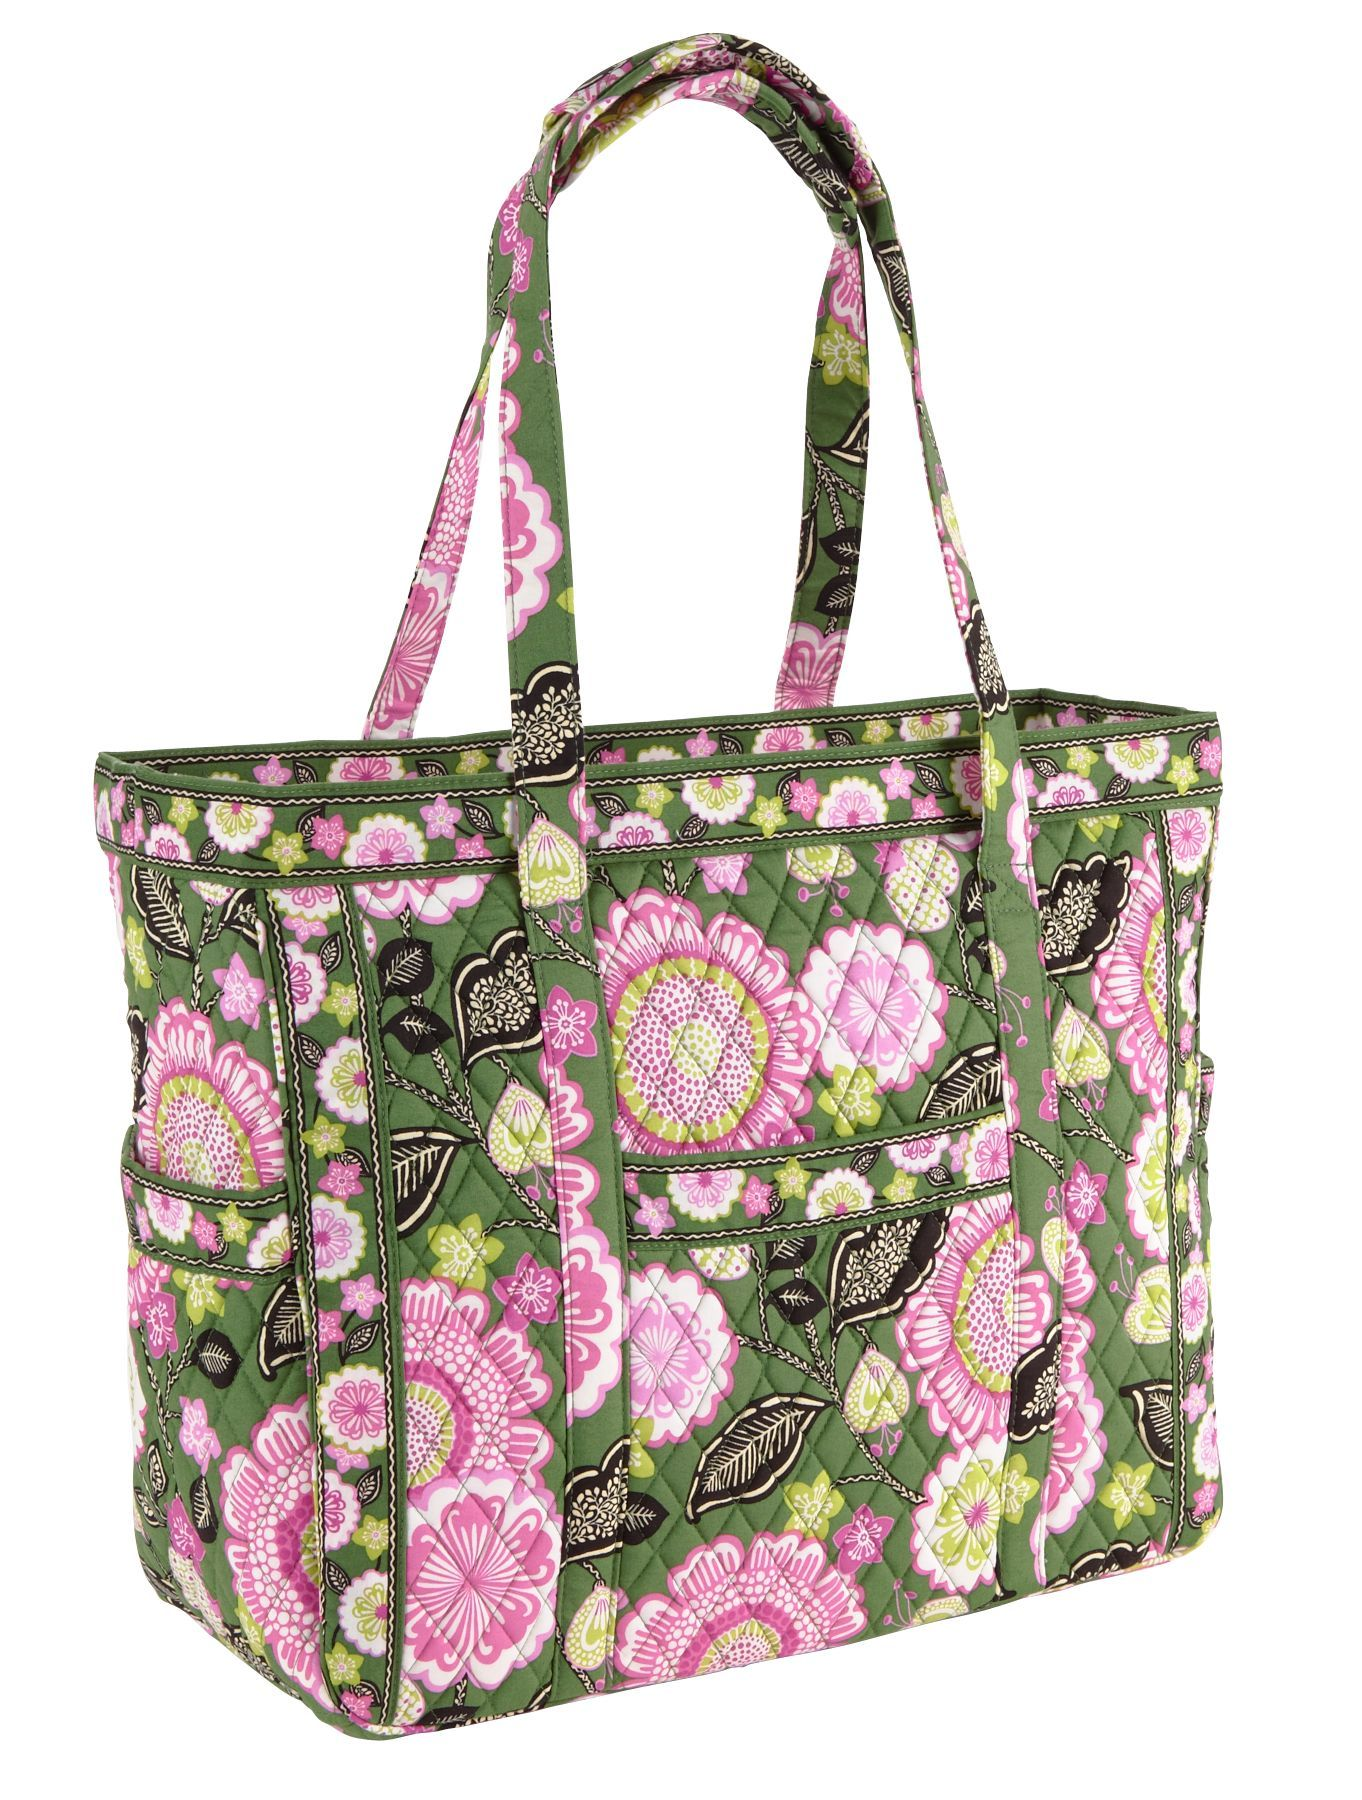 053dc7de26b5 Get Carried Away Tote in Olivia Pink